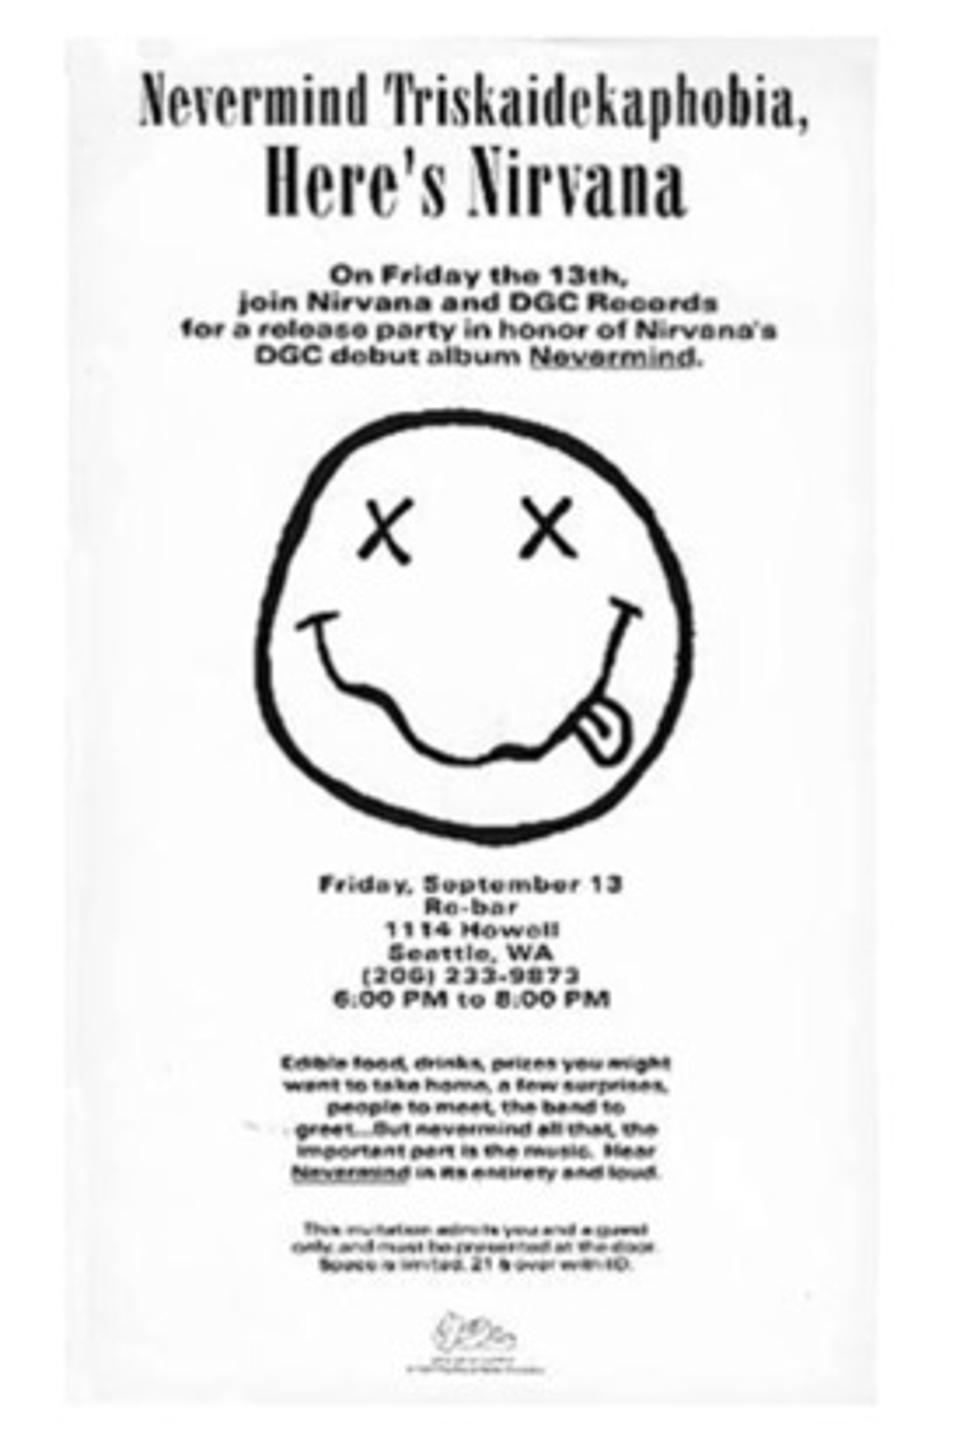 Invitation to Nirvana's release party for debut album ″Nevermind″